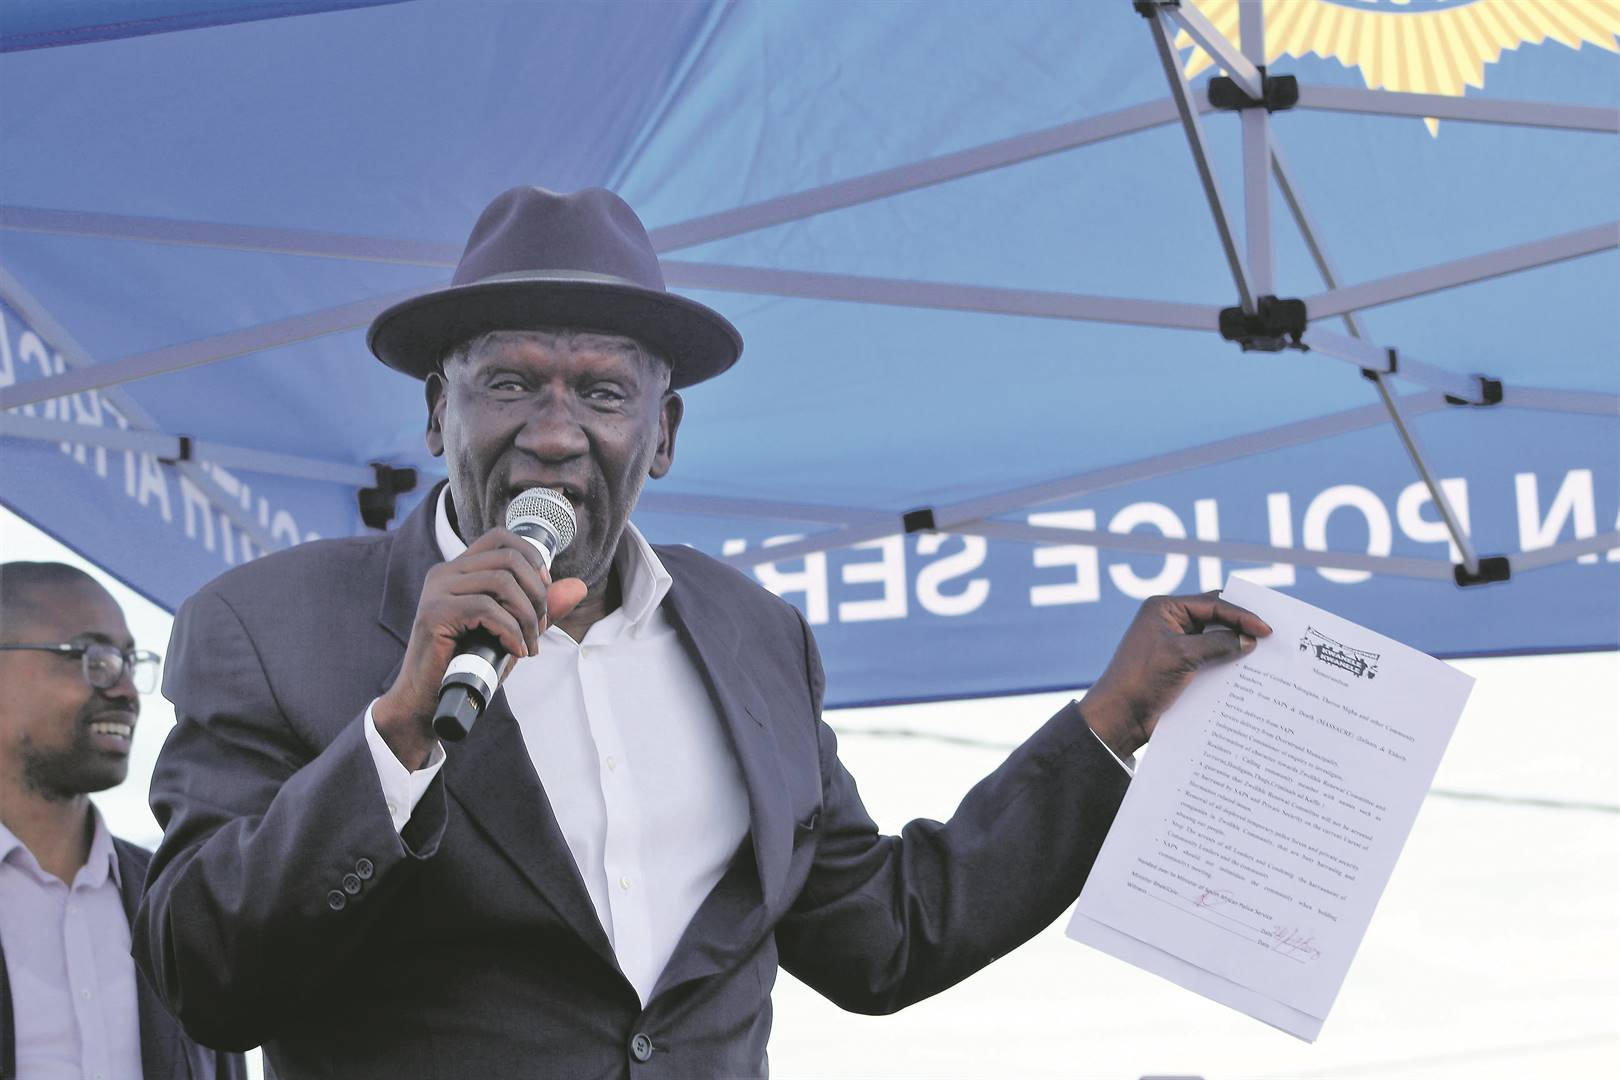 Claims of nepotism, tribalism, victimisation and abuse of power within the Special Task Force have emerged, with minister after minister failing to take any action. Complaints in letters to national commissioners, Police Minister Bheki Cele and his predecessor Fikile Mbalula, which City Press has seen, have not yet been addressed.